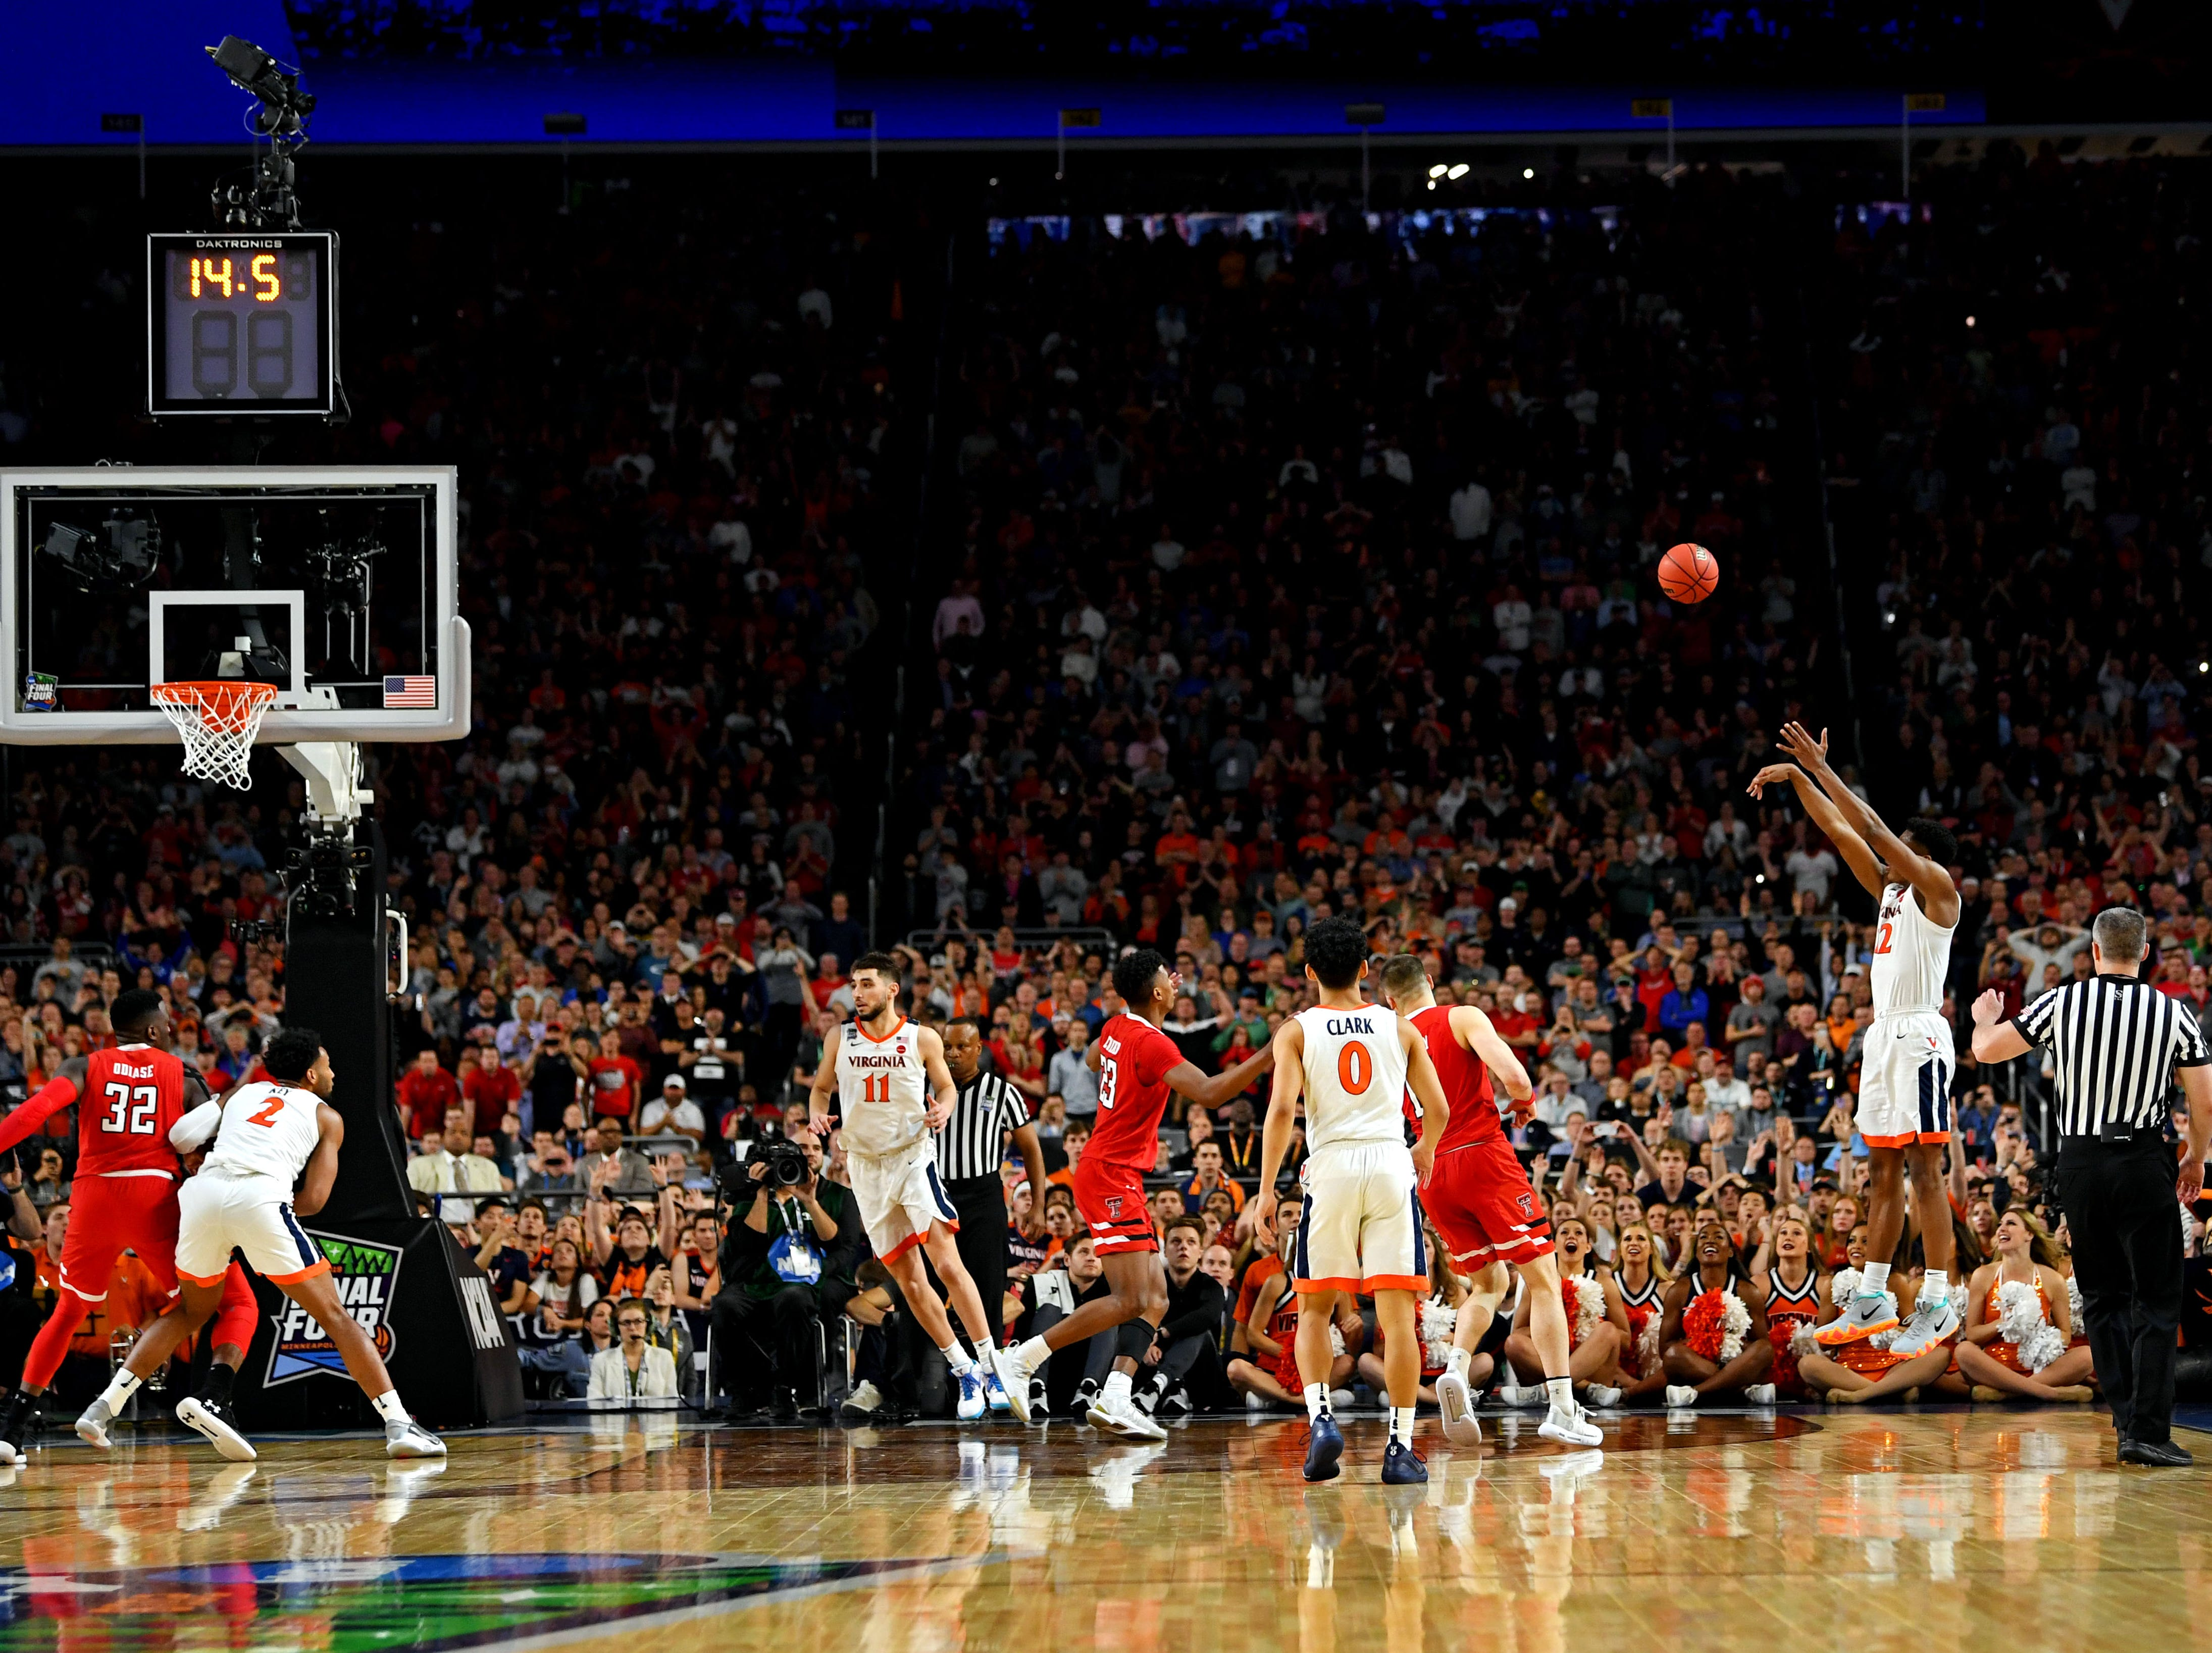 Apr 8, 2019; Minneapolis, MN, USA; Virginia Cavaliers guard De'Andre Hunter (12) shoots the ball during the second half against the Texas Tech Red Raiders in the championship game of the 2019 men's Final Four at US Bank Stadium. Mandatory Credit: Bob Donnan-USA TODAY Sports